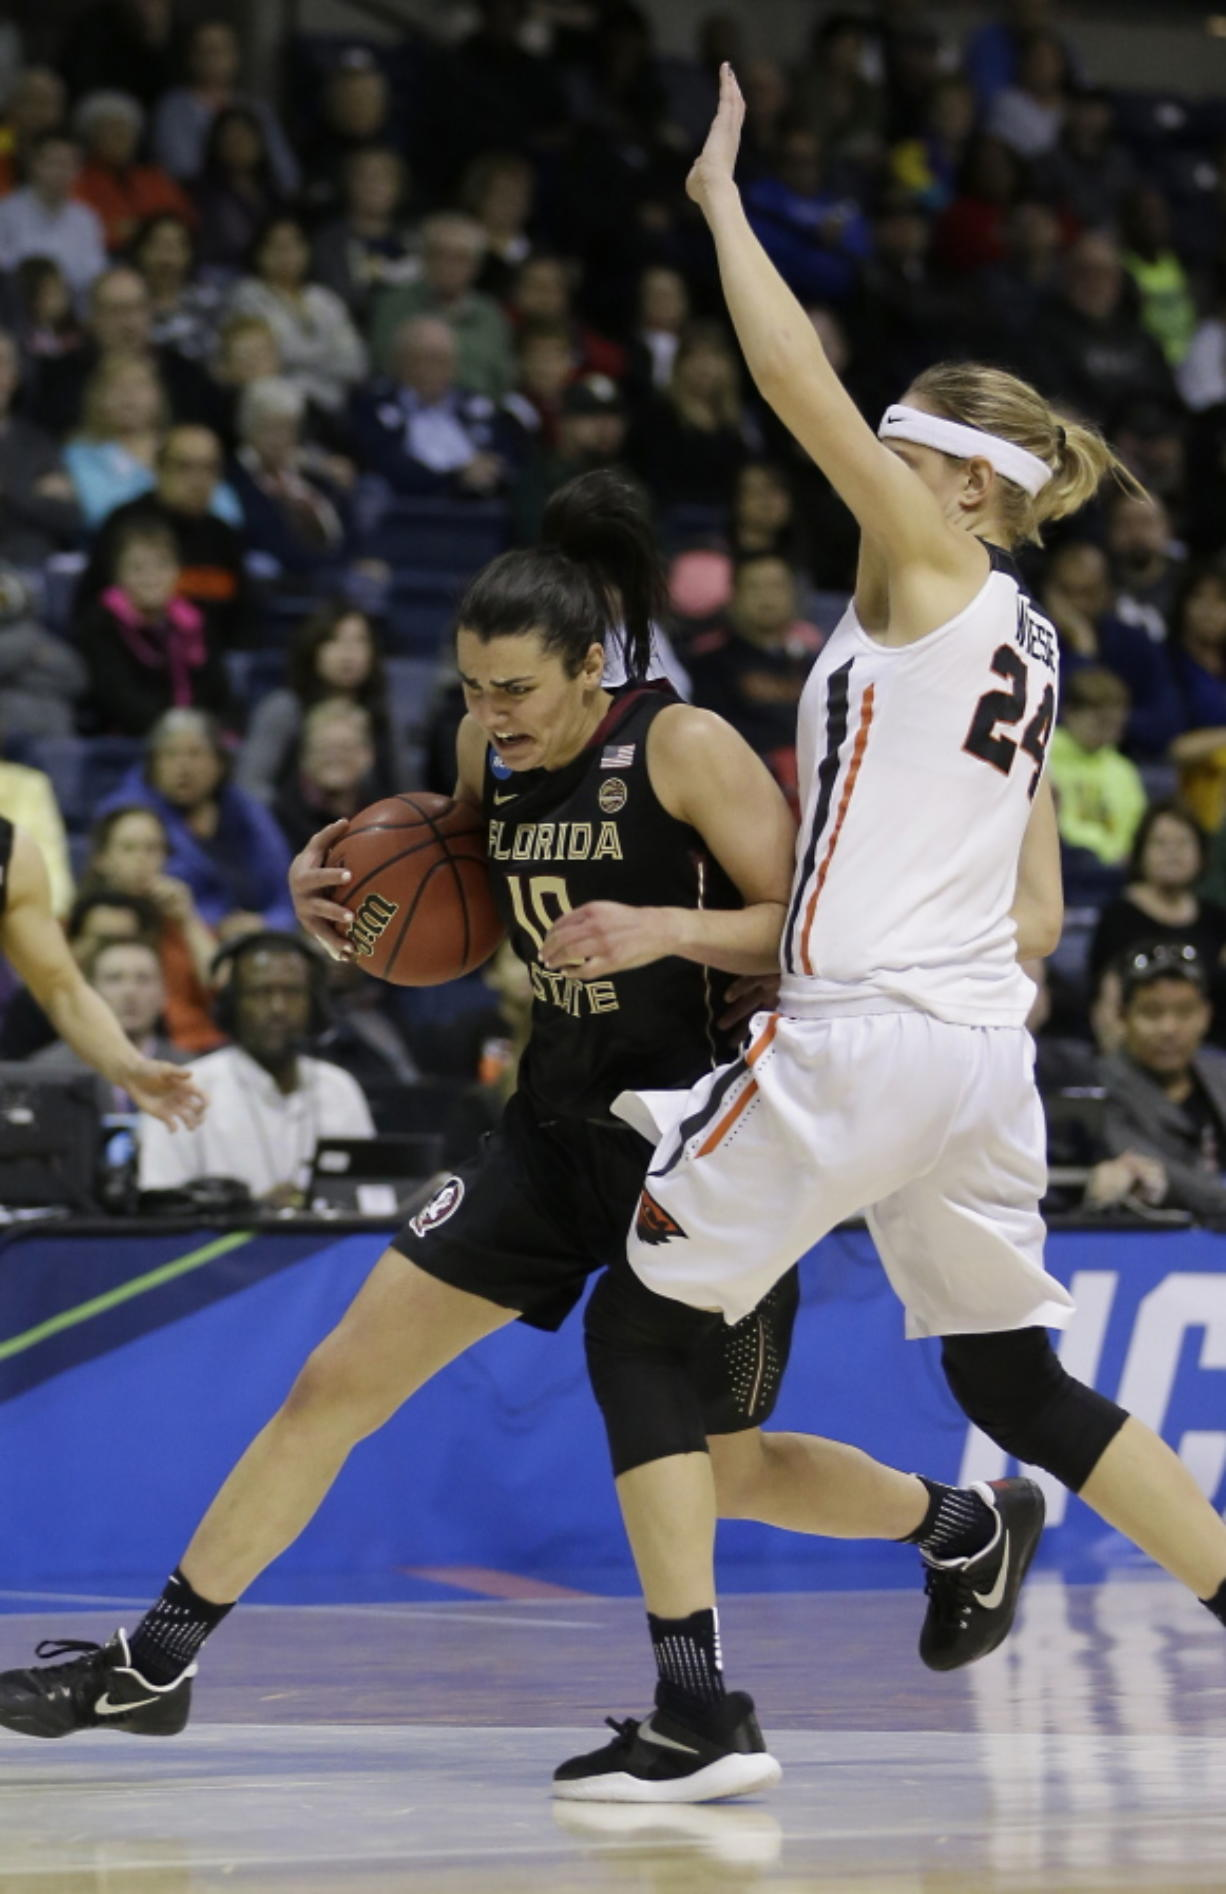 Florida State guard Leticia Romero, left, drives against Oregon State guard Sydney Wiese during the first half of a regional semi-final round game of an NCAA college basketball tournament, Saturday, March 25, 2017, in Stockton, Calif.